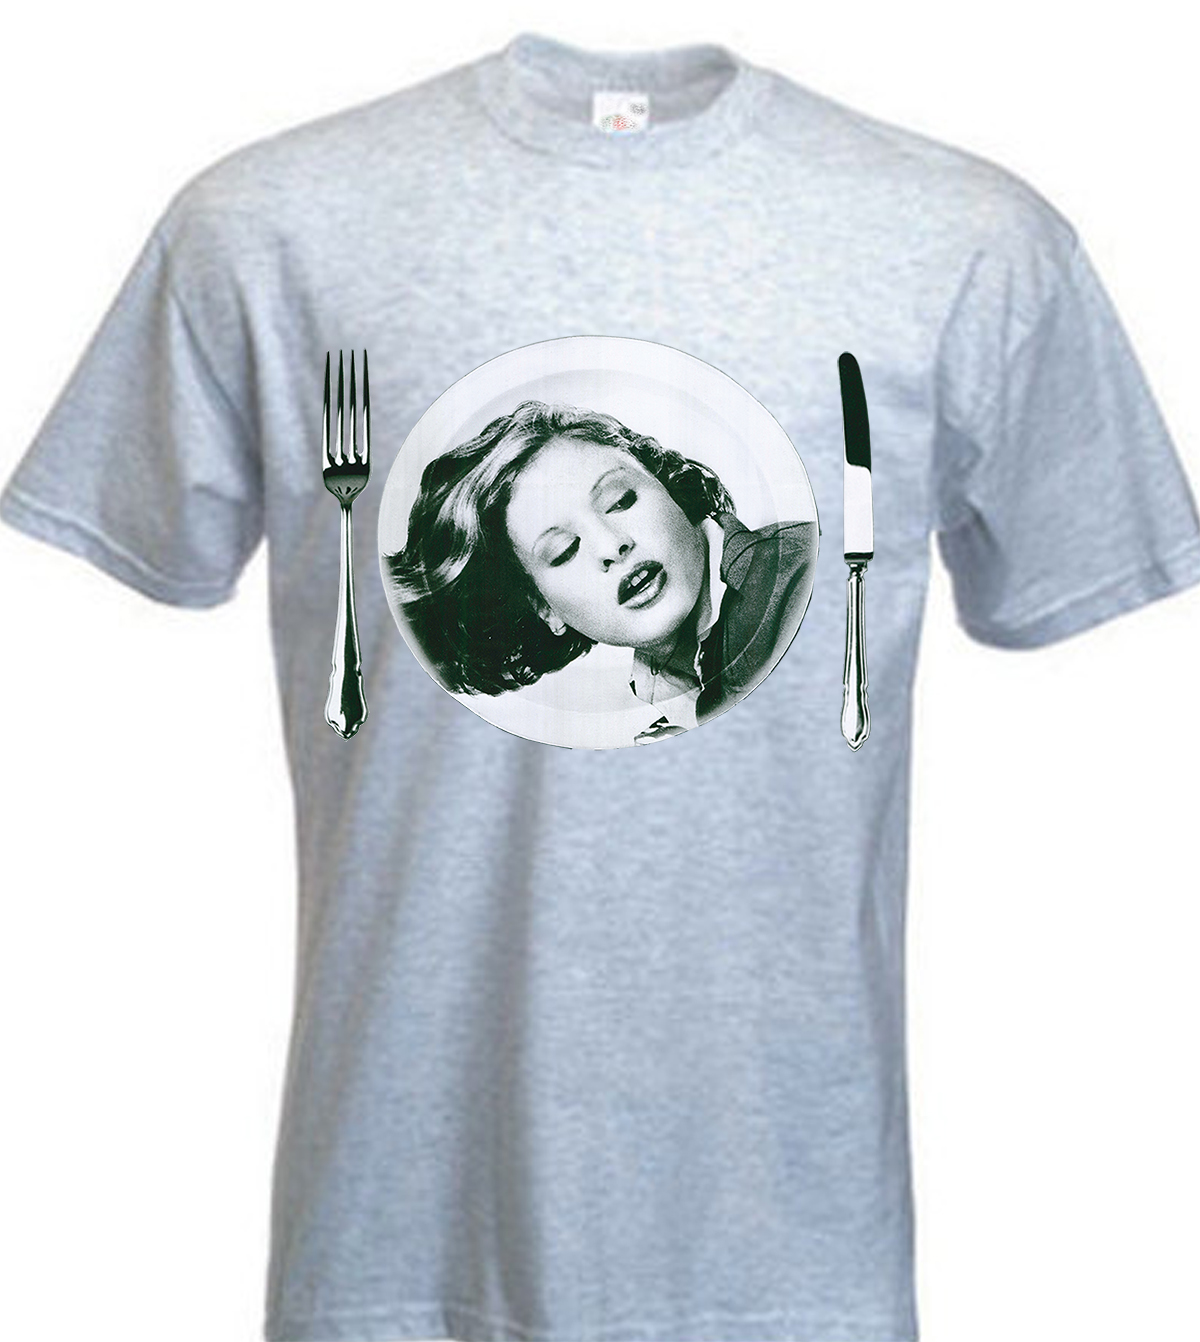 Barbara Broadcast 2013 Limited T-Shirt, Gray.